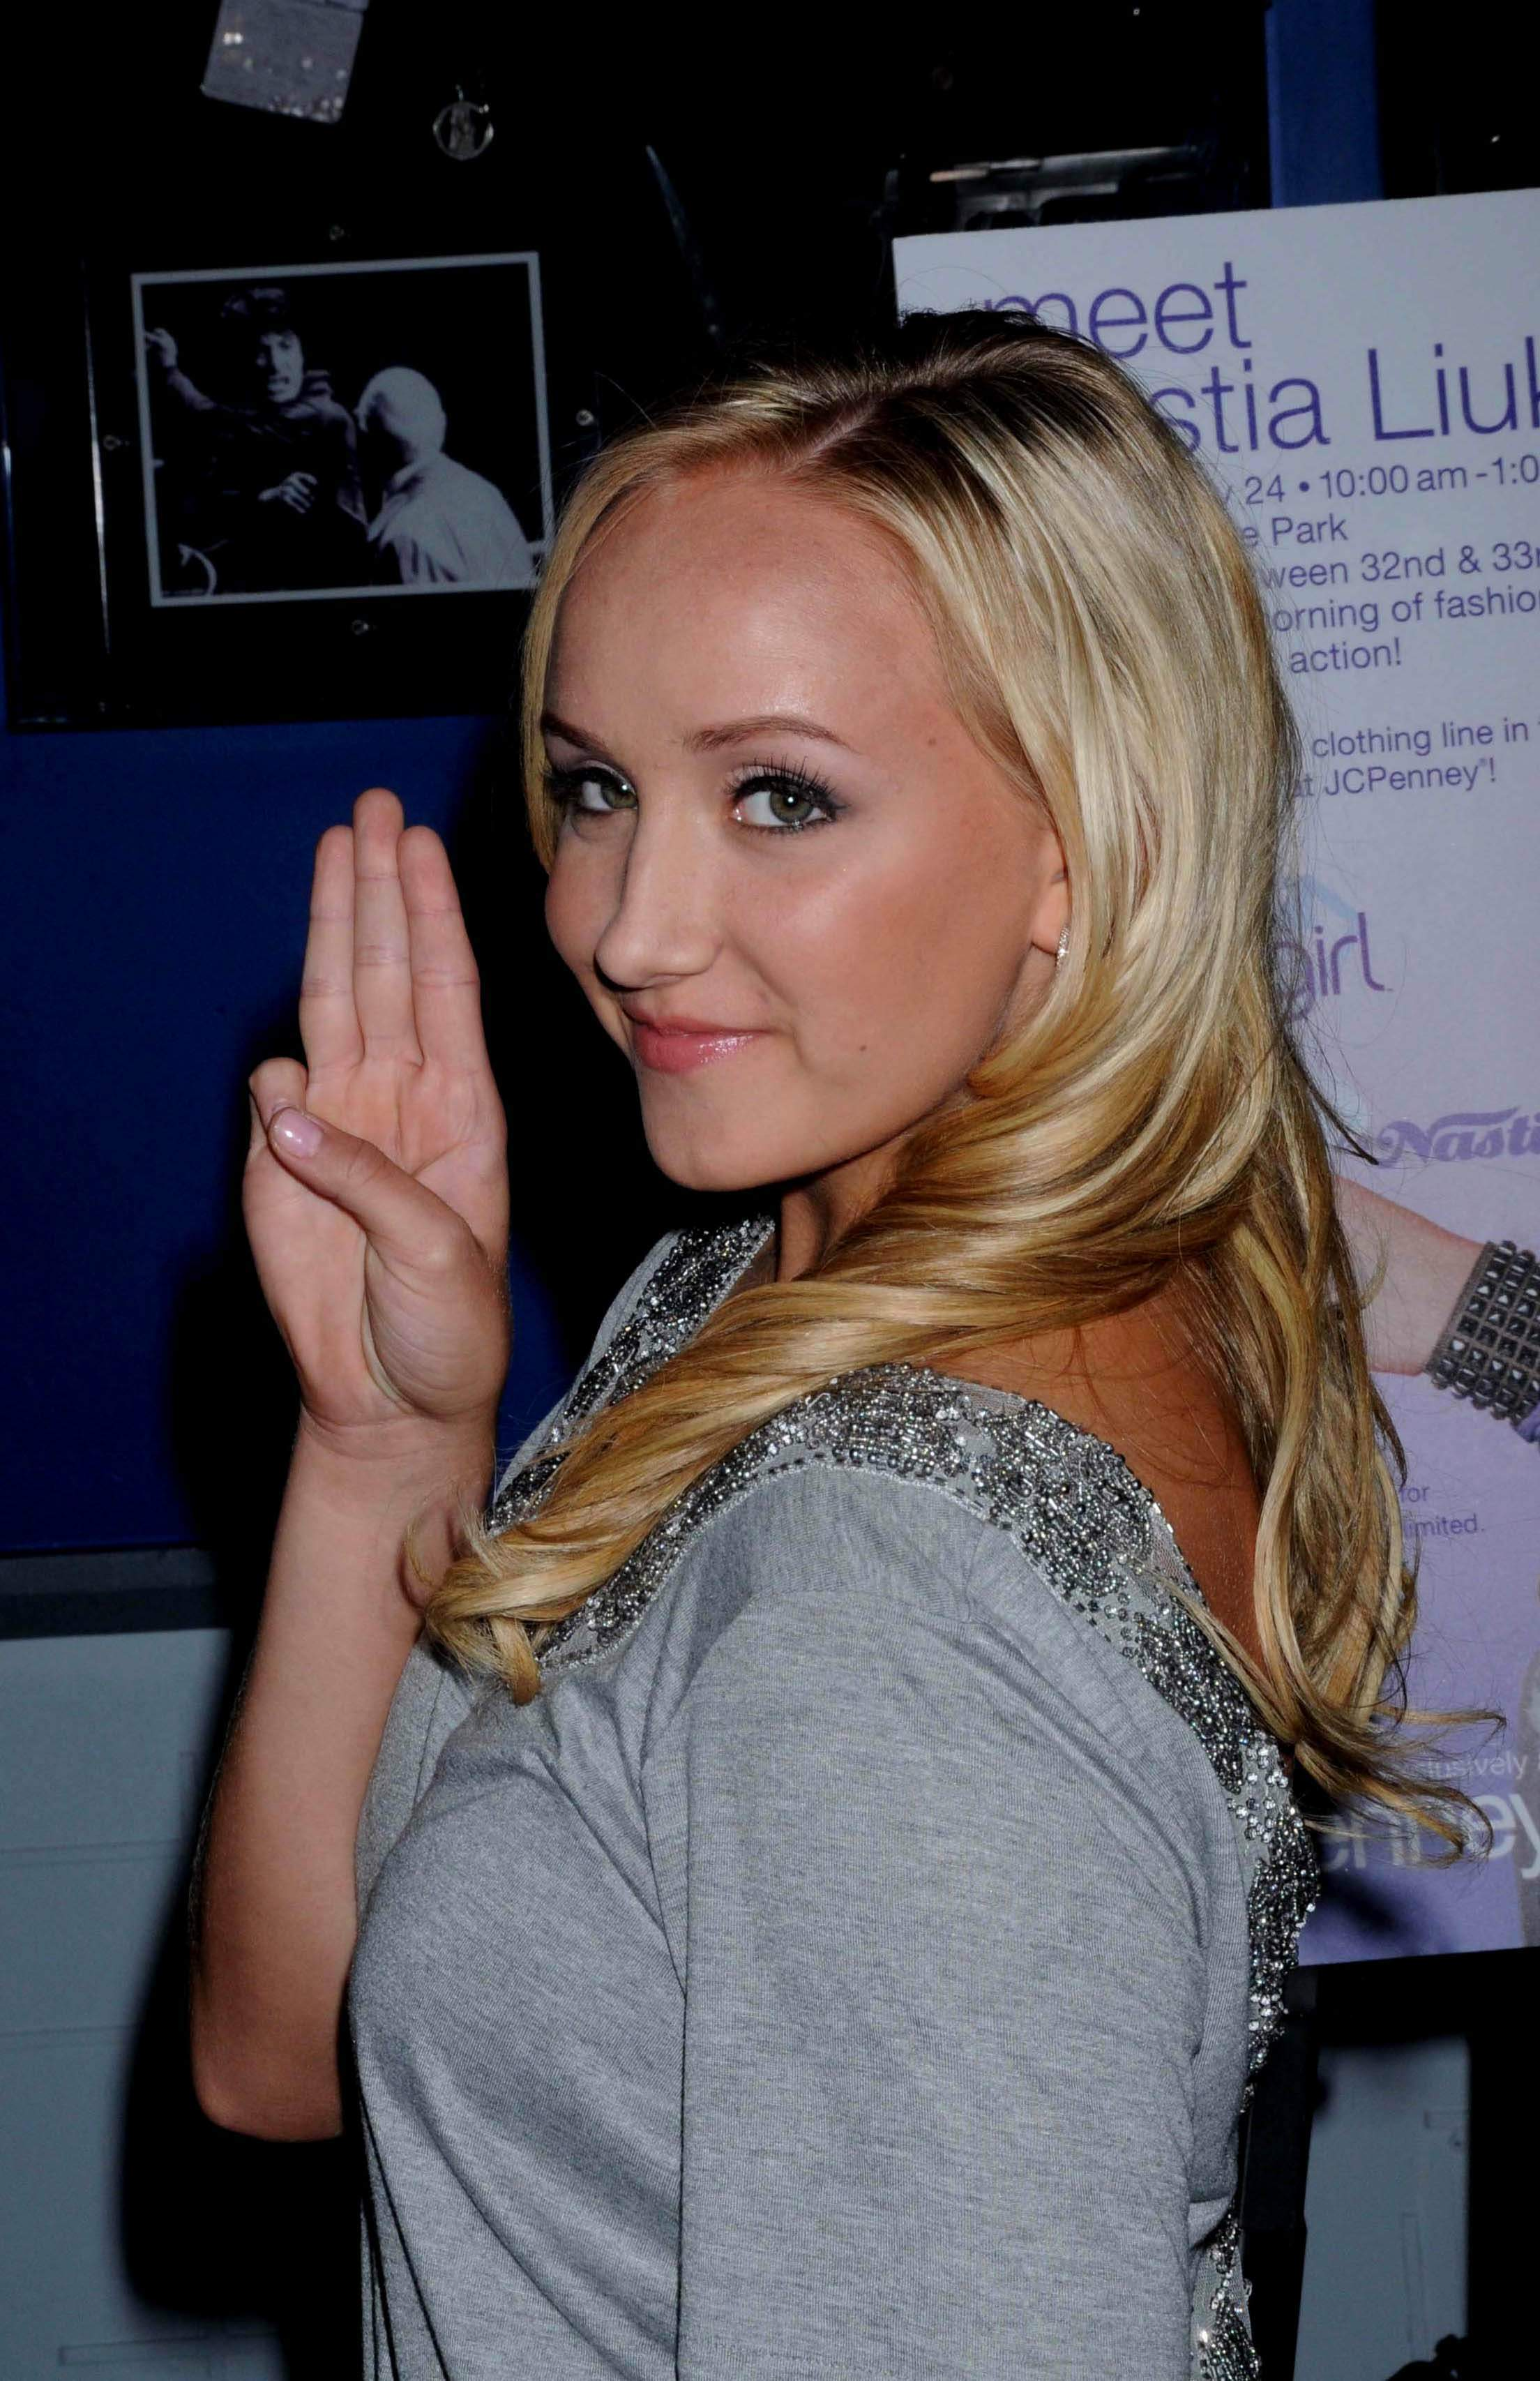 116971284_Nastia_liukin_promotes_Supergirl_clothing_line_at_Planet_Hollywood_1_122_587lo.jpg